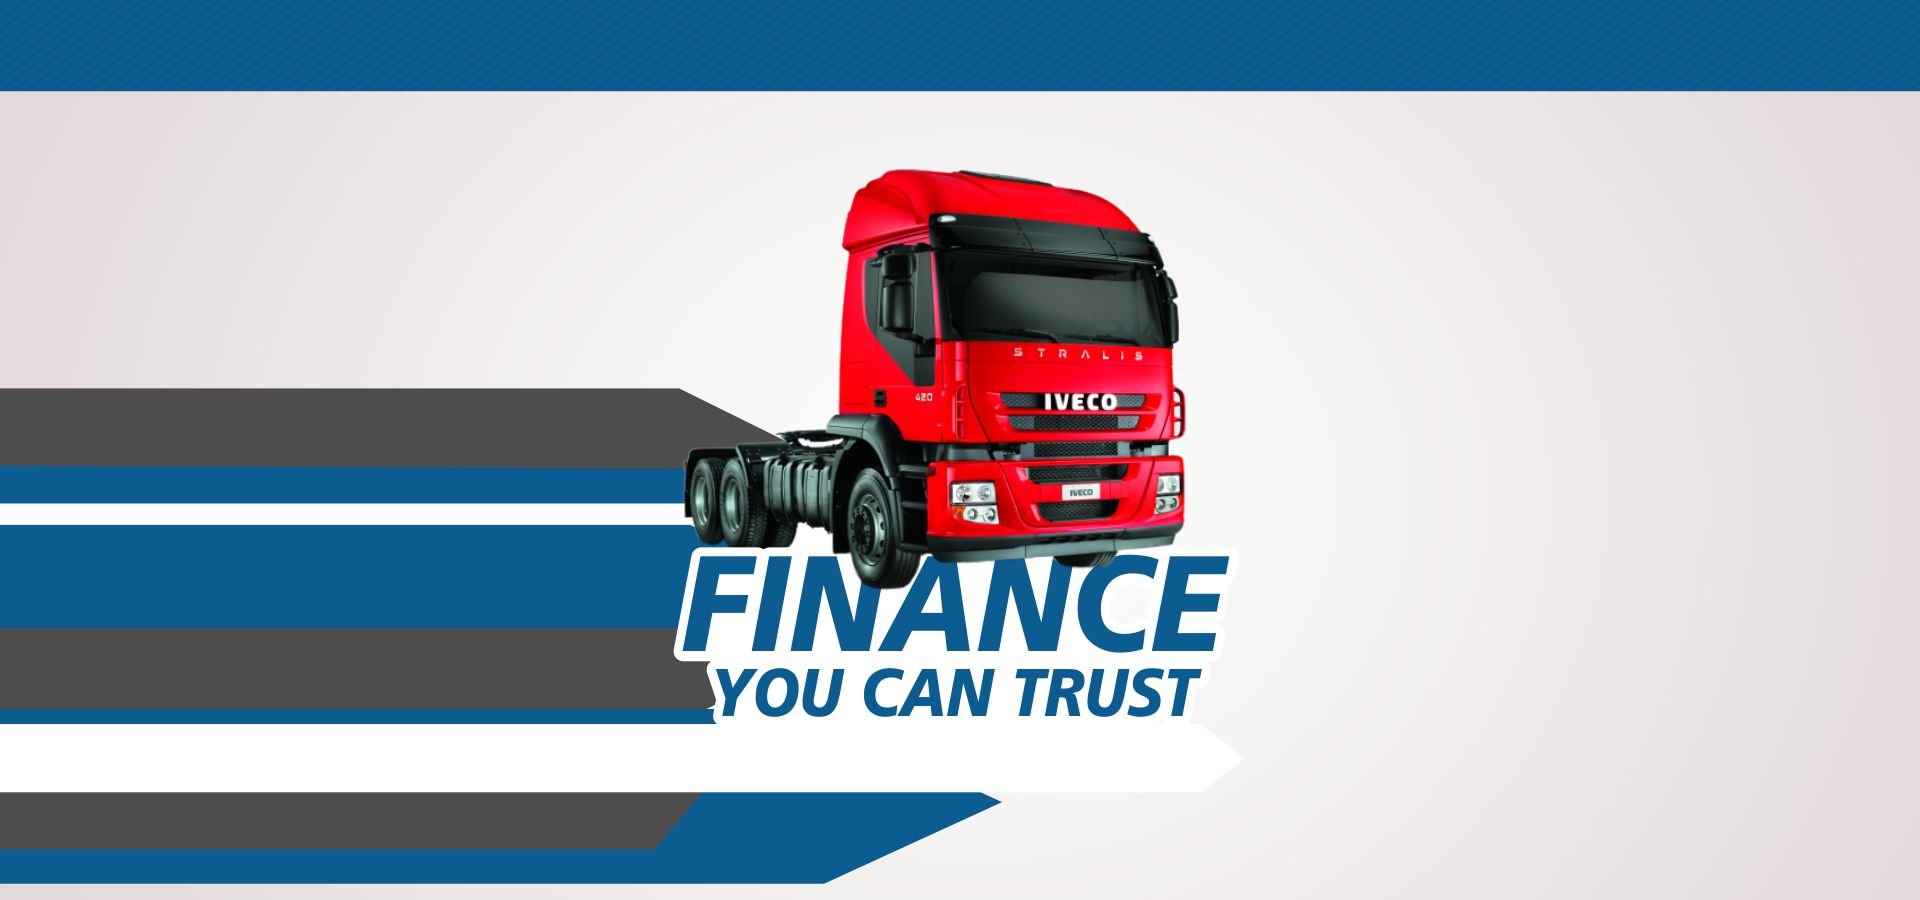 Finance you can trust